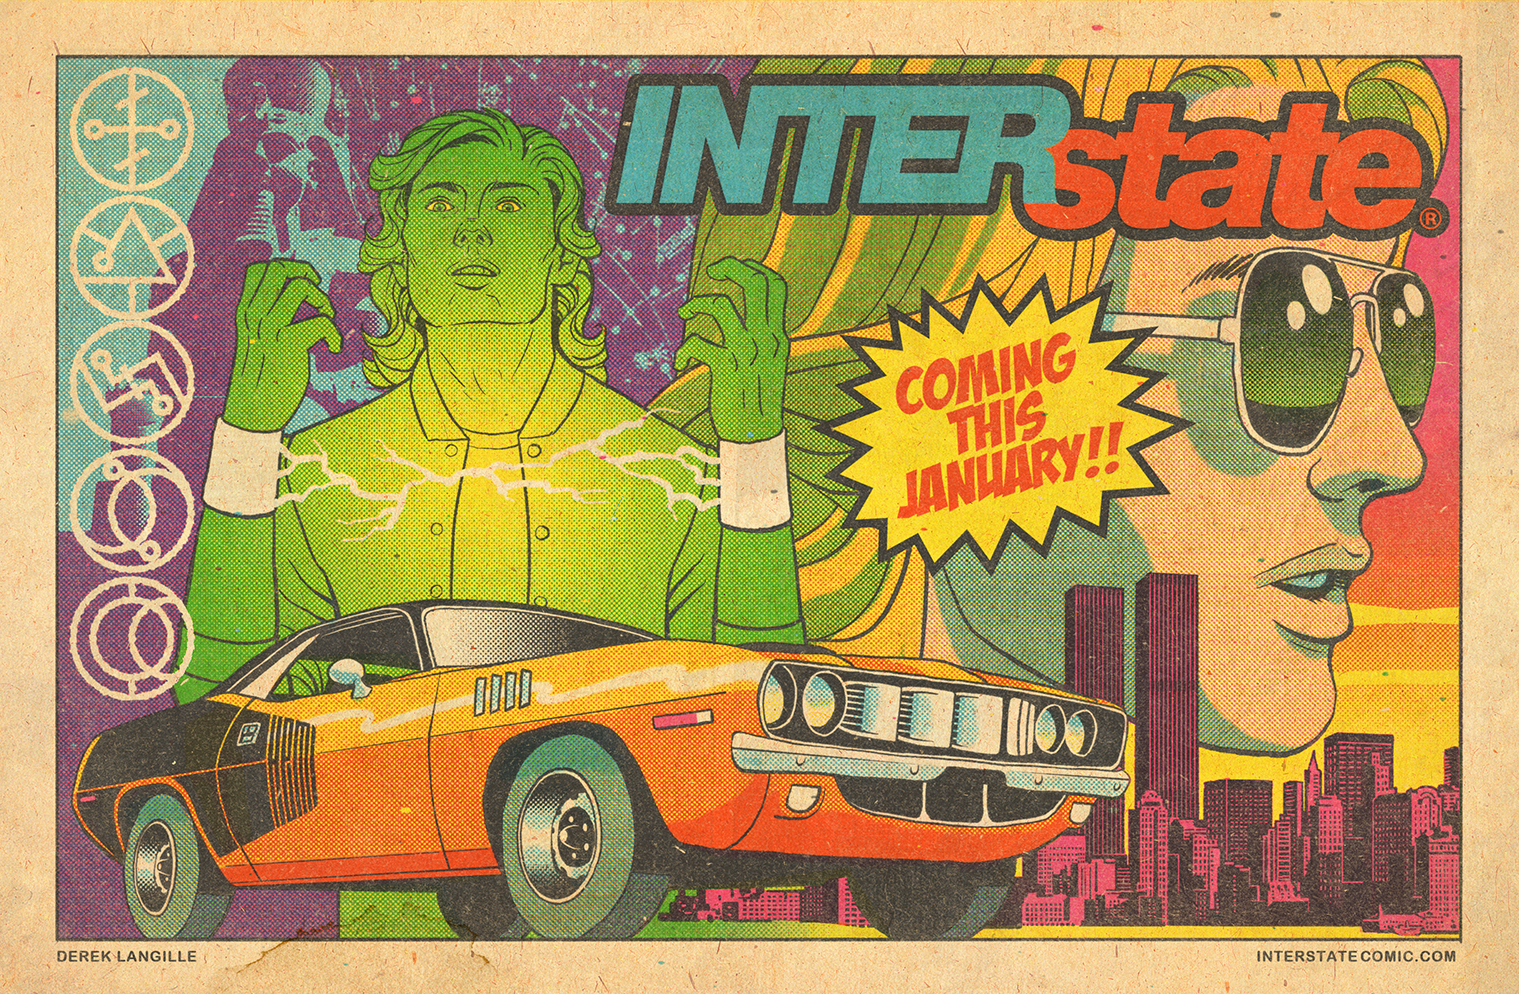 INTERstate ad 01